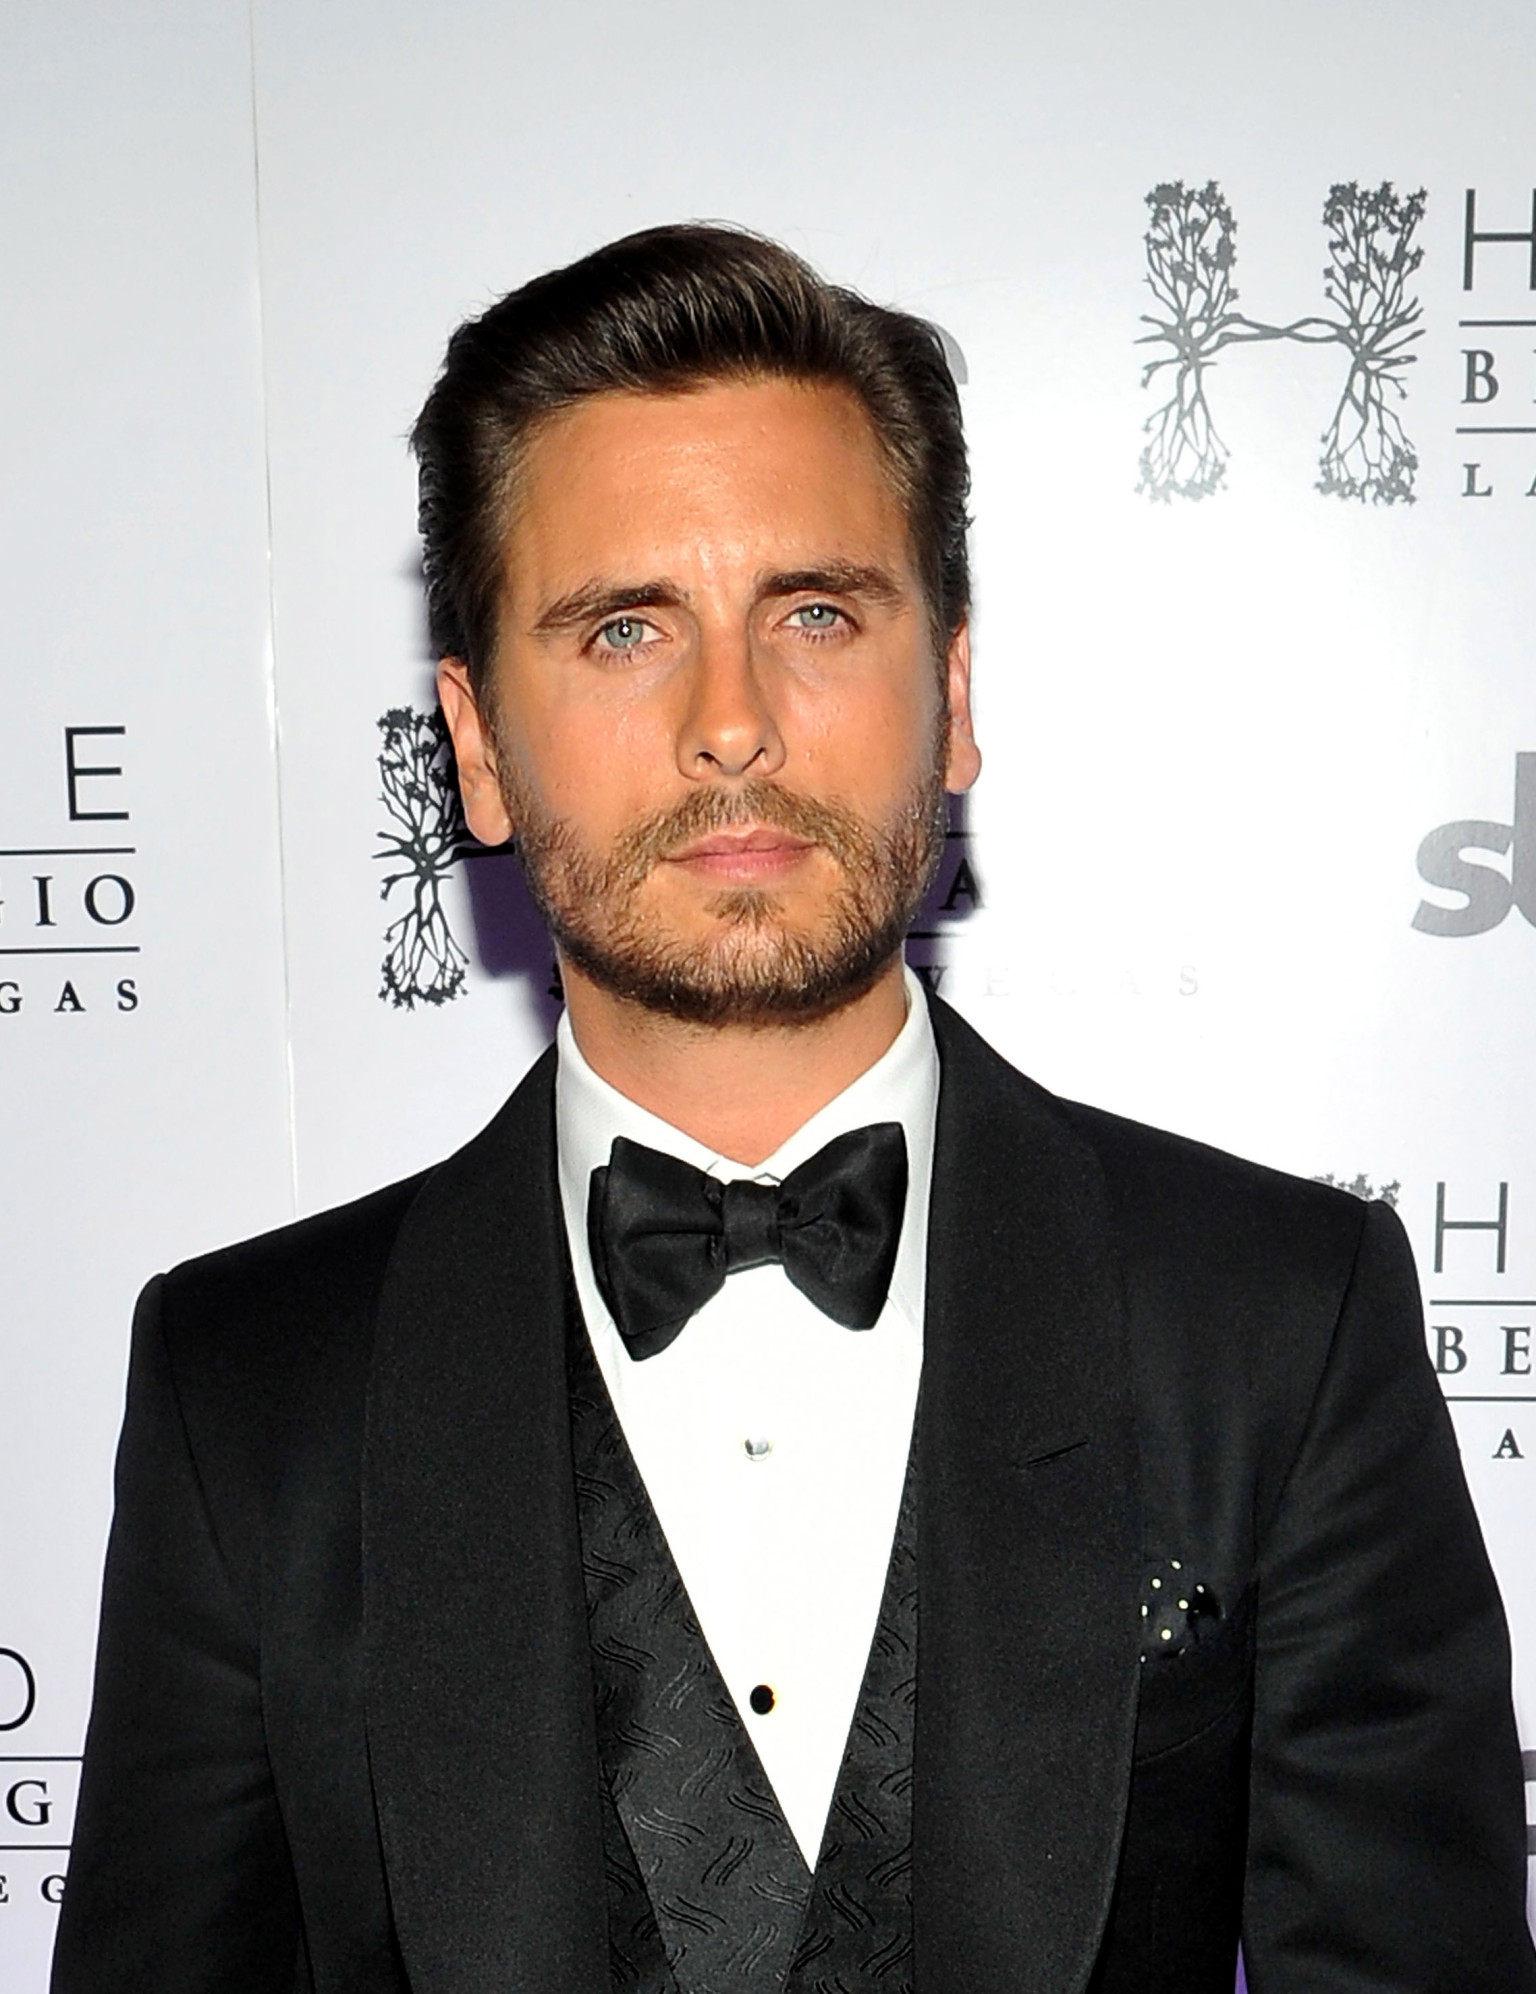 Scott Disick Is Mason's Father... In Case You Didn't Know ...